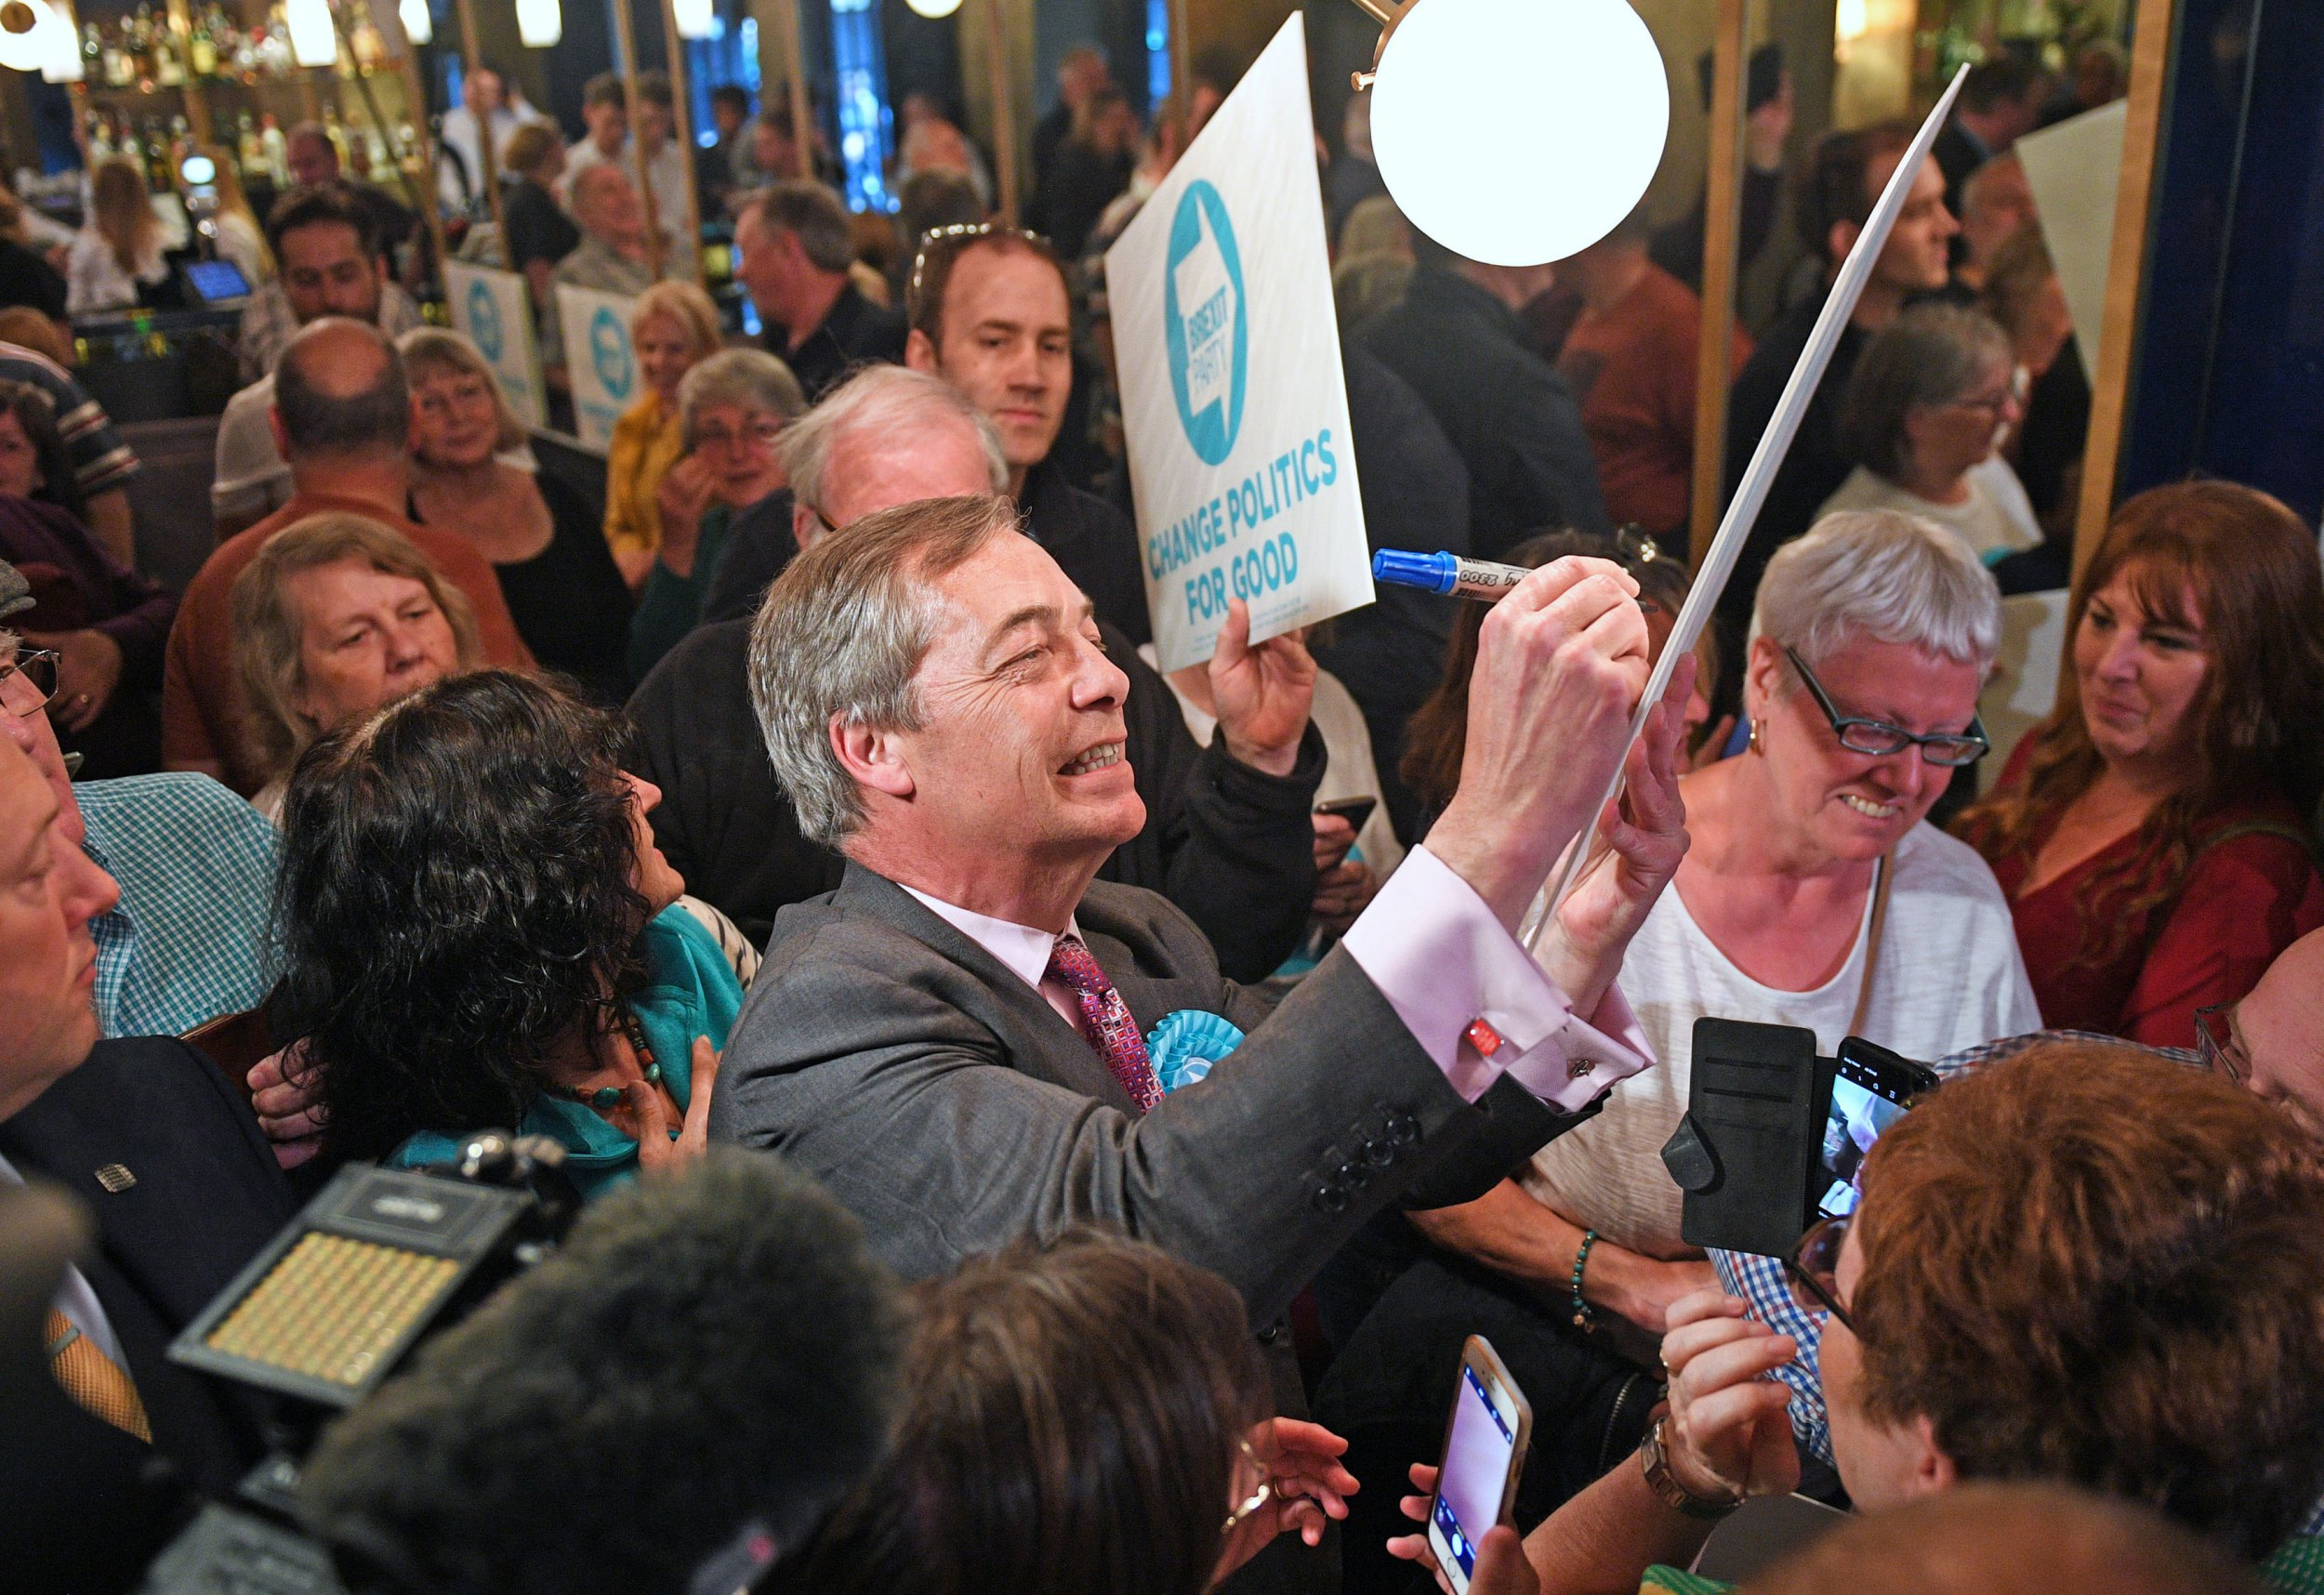 SEI_67641385 Nigel Farage declares 'The Only Way Is Brexit' as he visits TOWIE cast